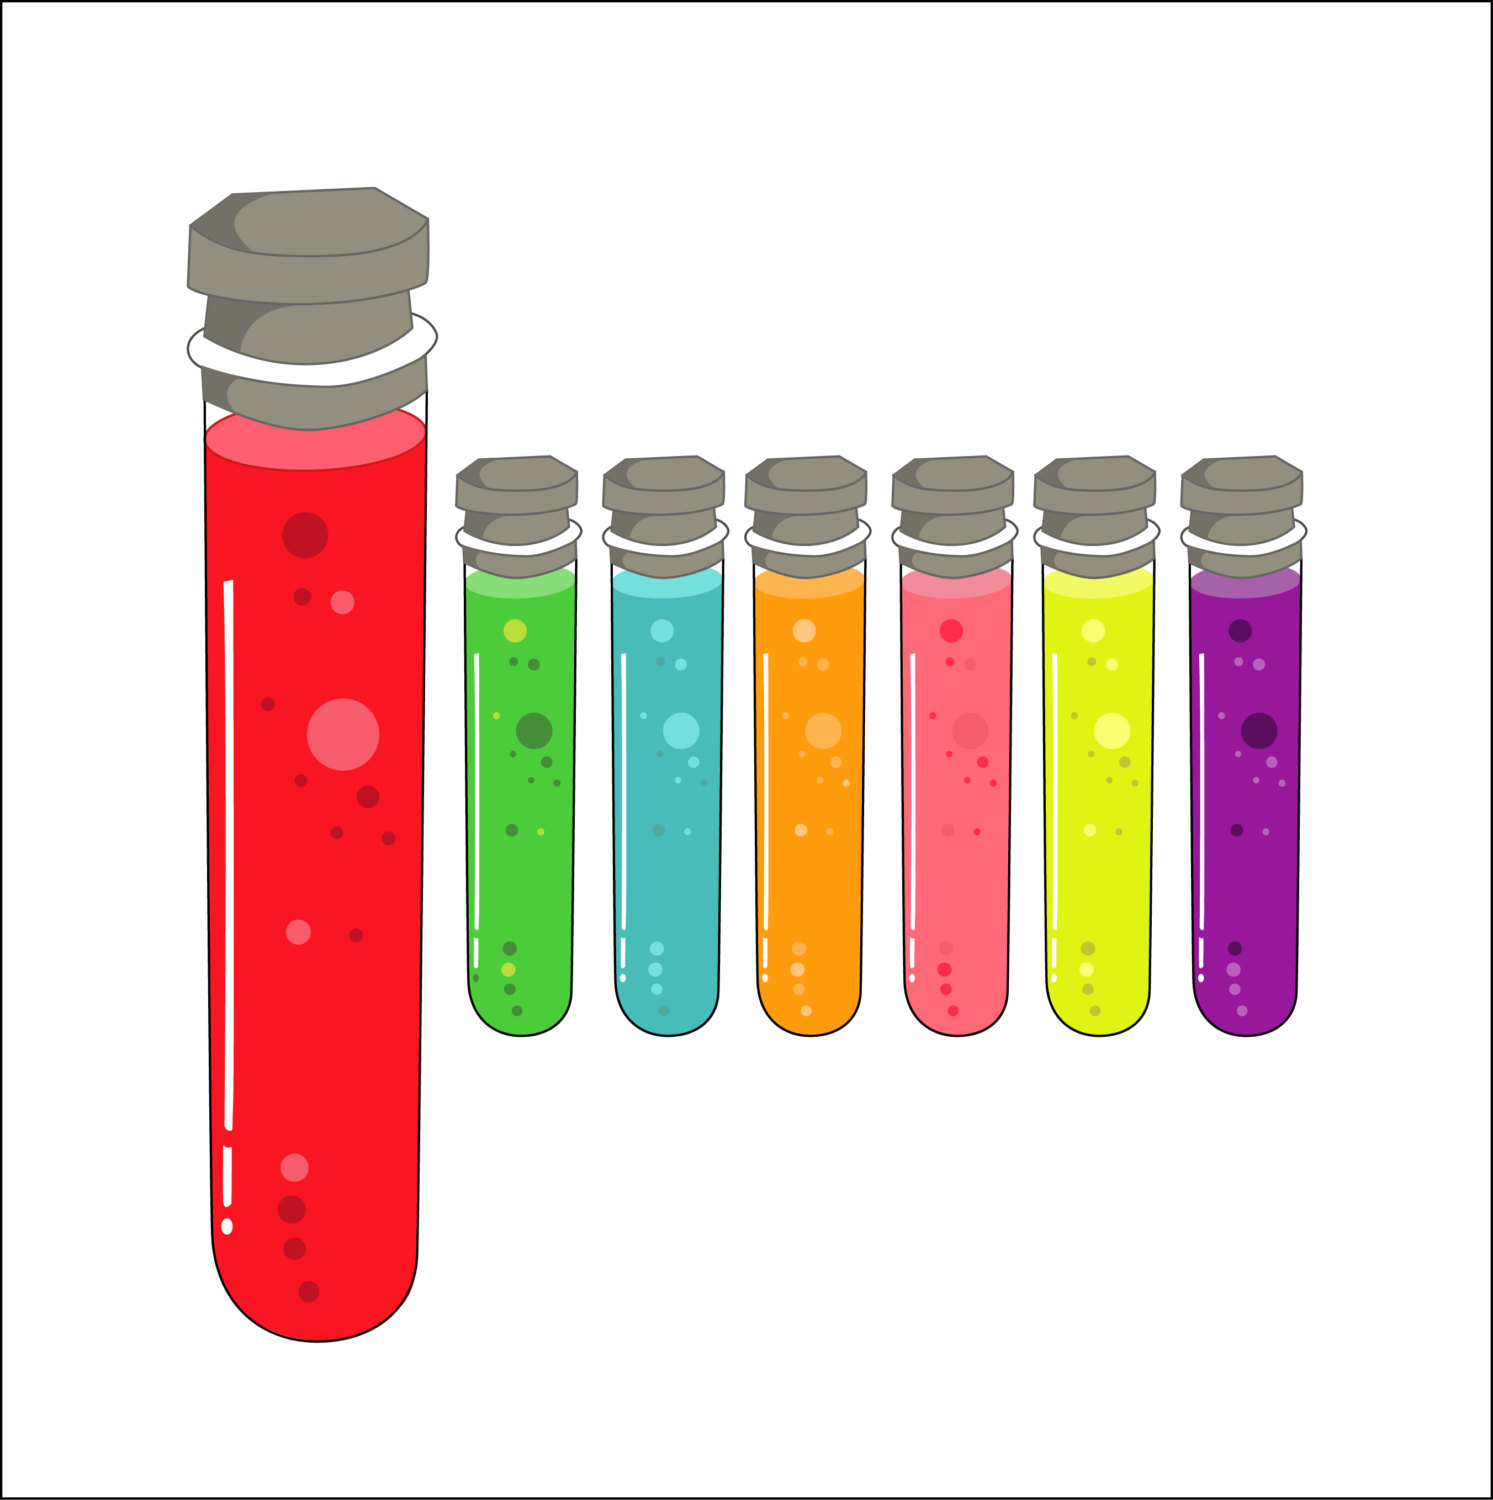 1493x1500 Test Tube Clipart, Test Tubes Clipart, Science Clipart, Magic